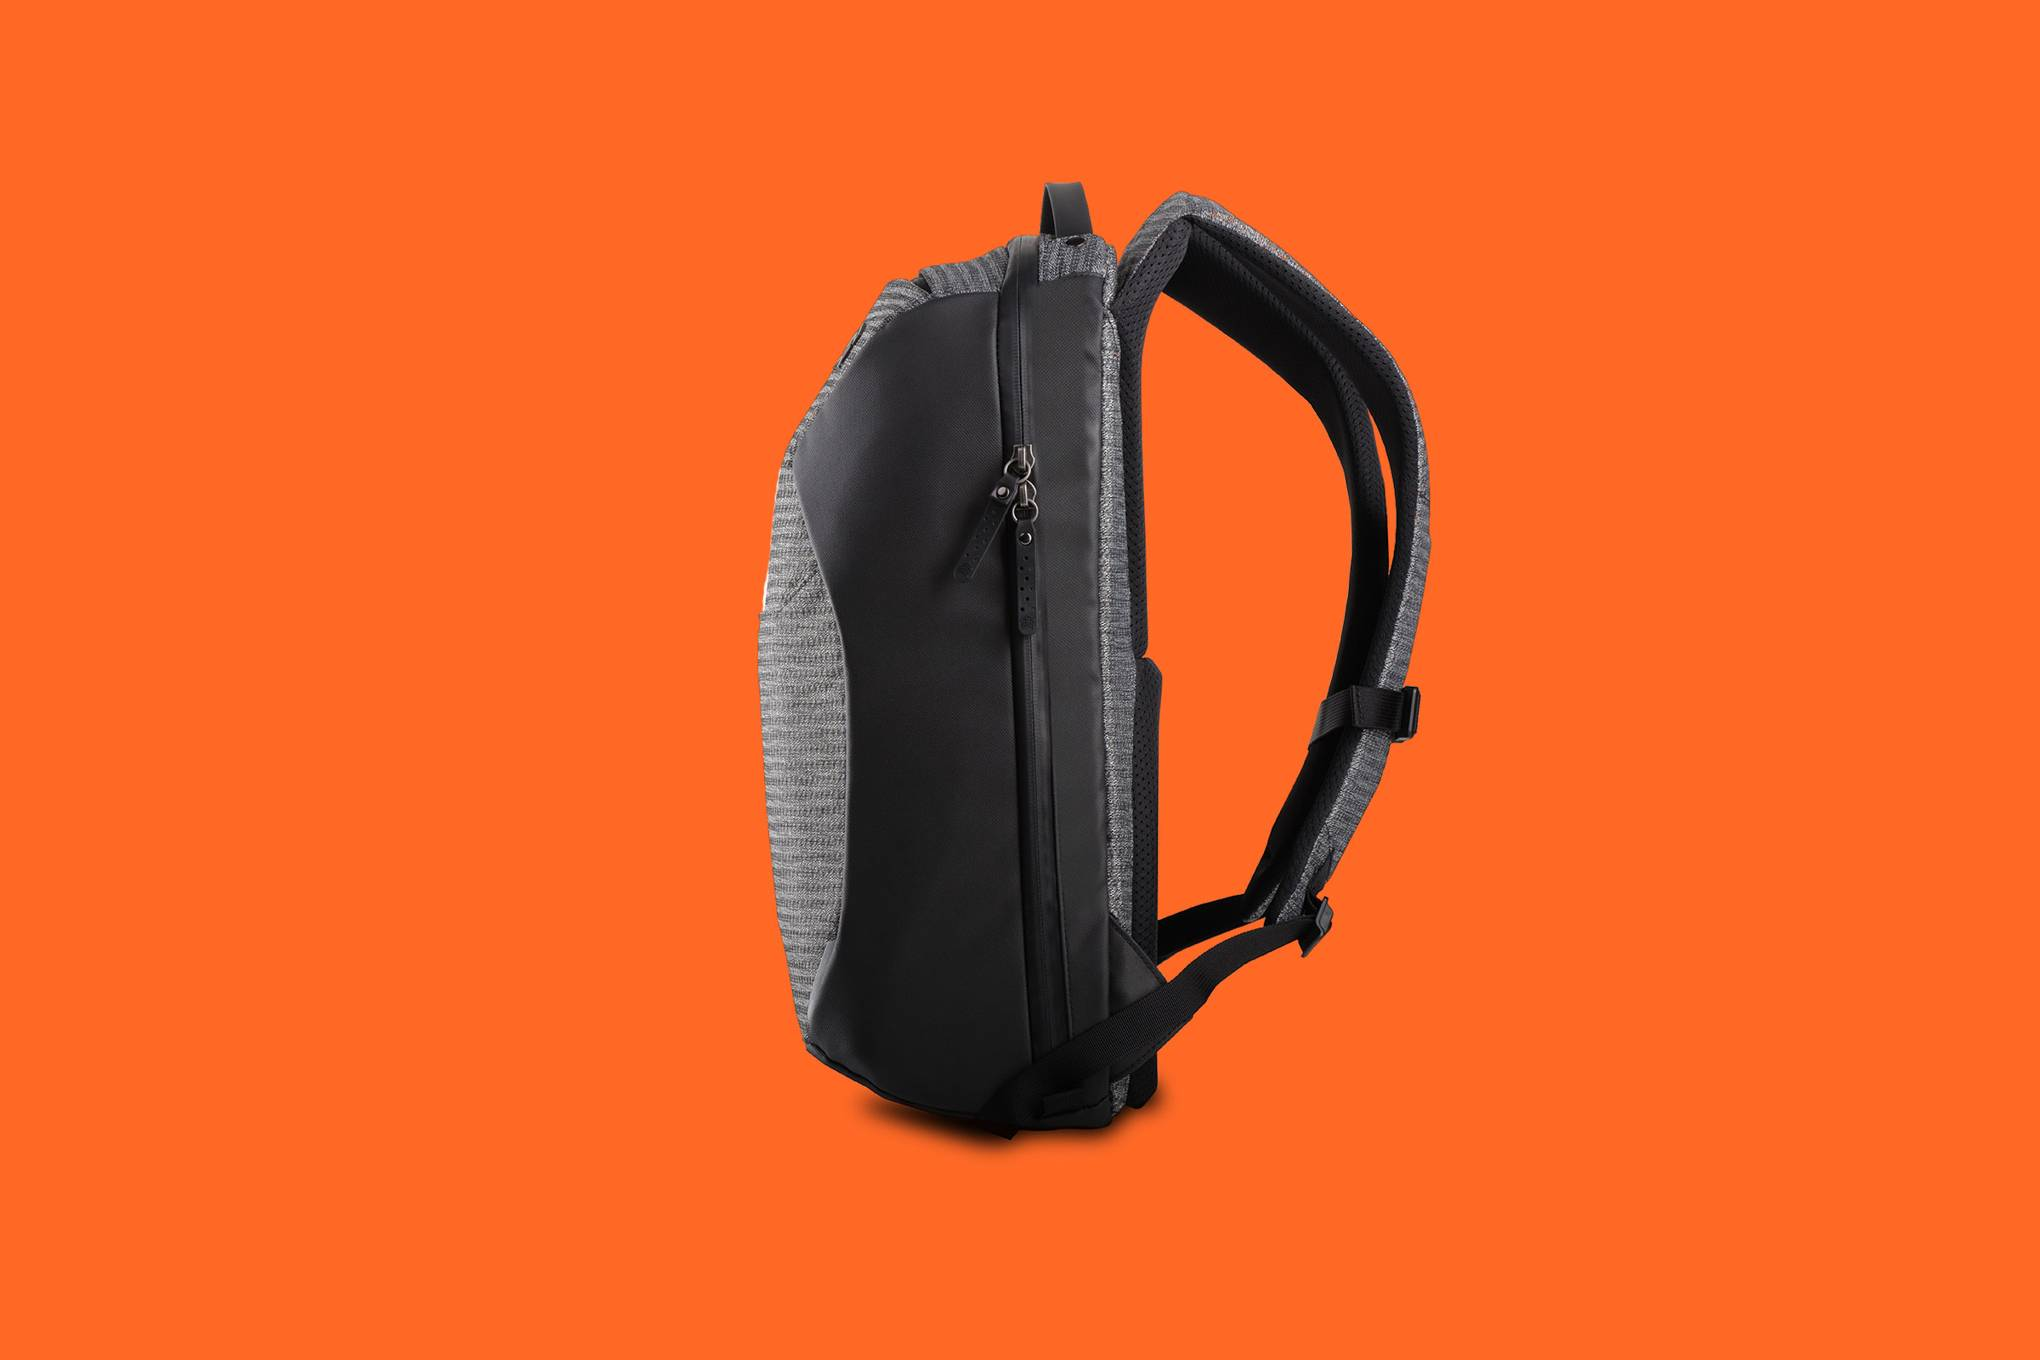 4690ece1fa0119 Best Backpack 2019: The bestpacks for travel and work | WIRED UK